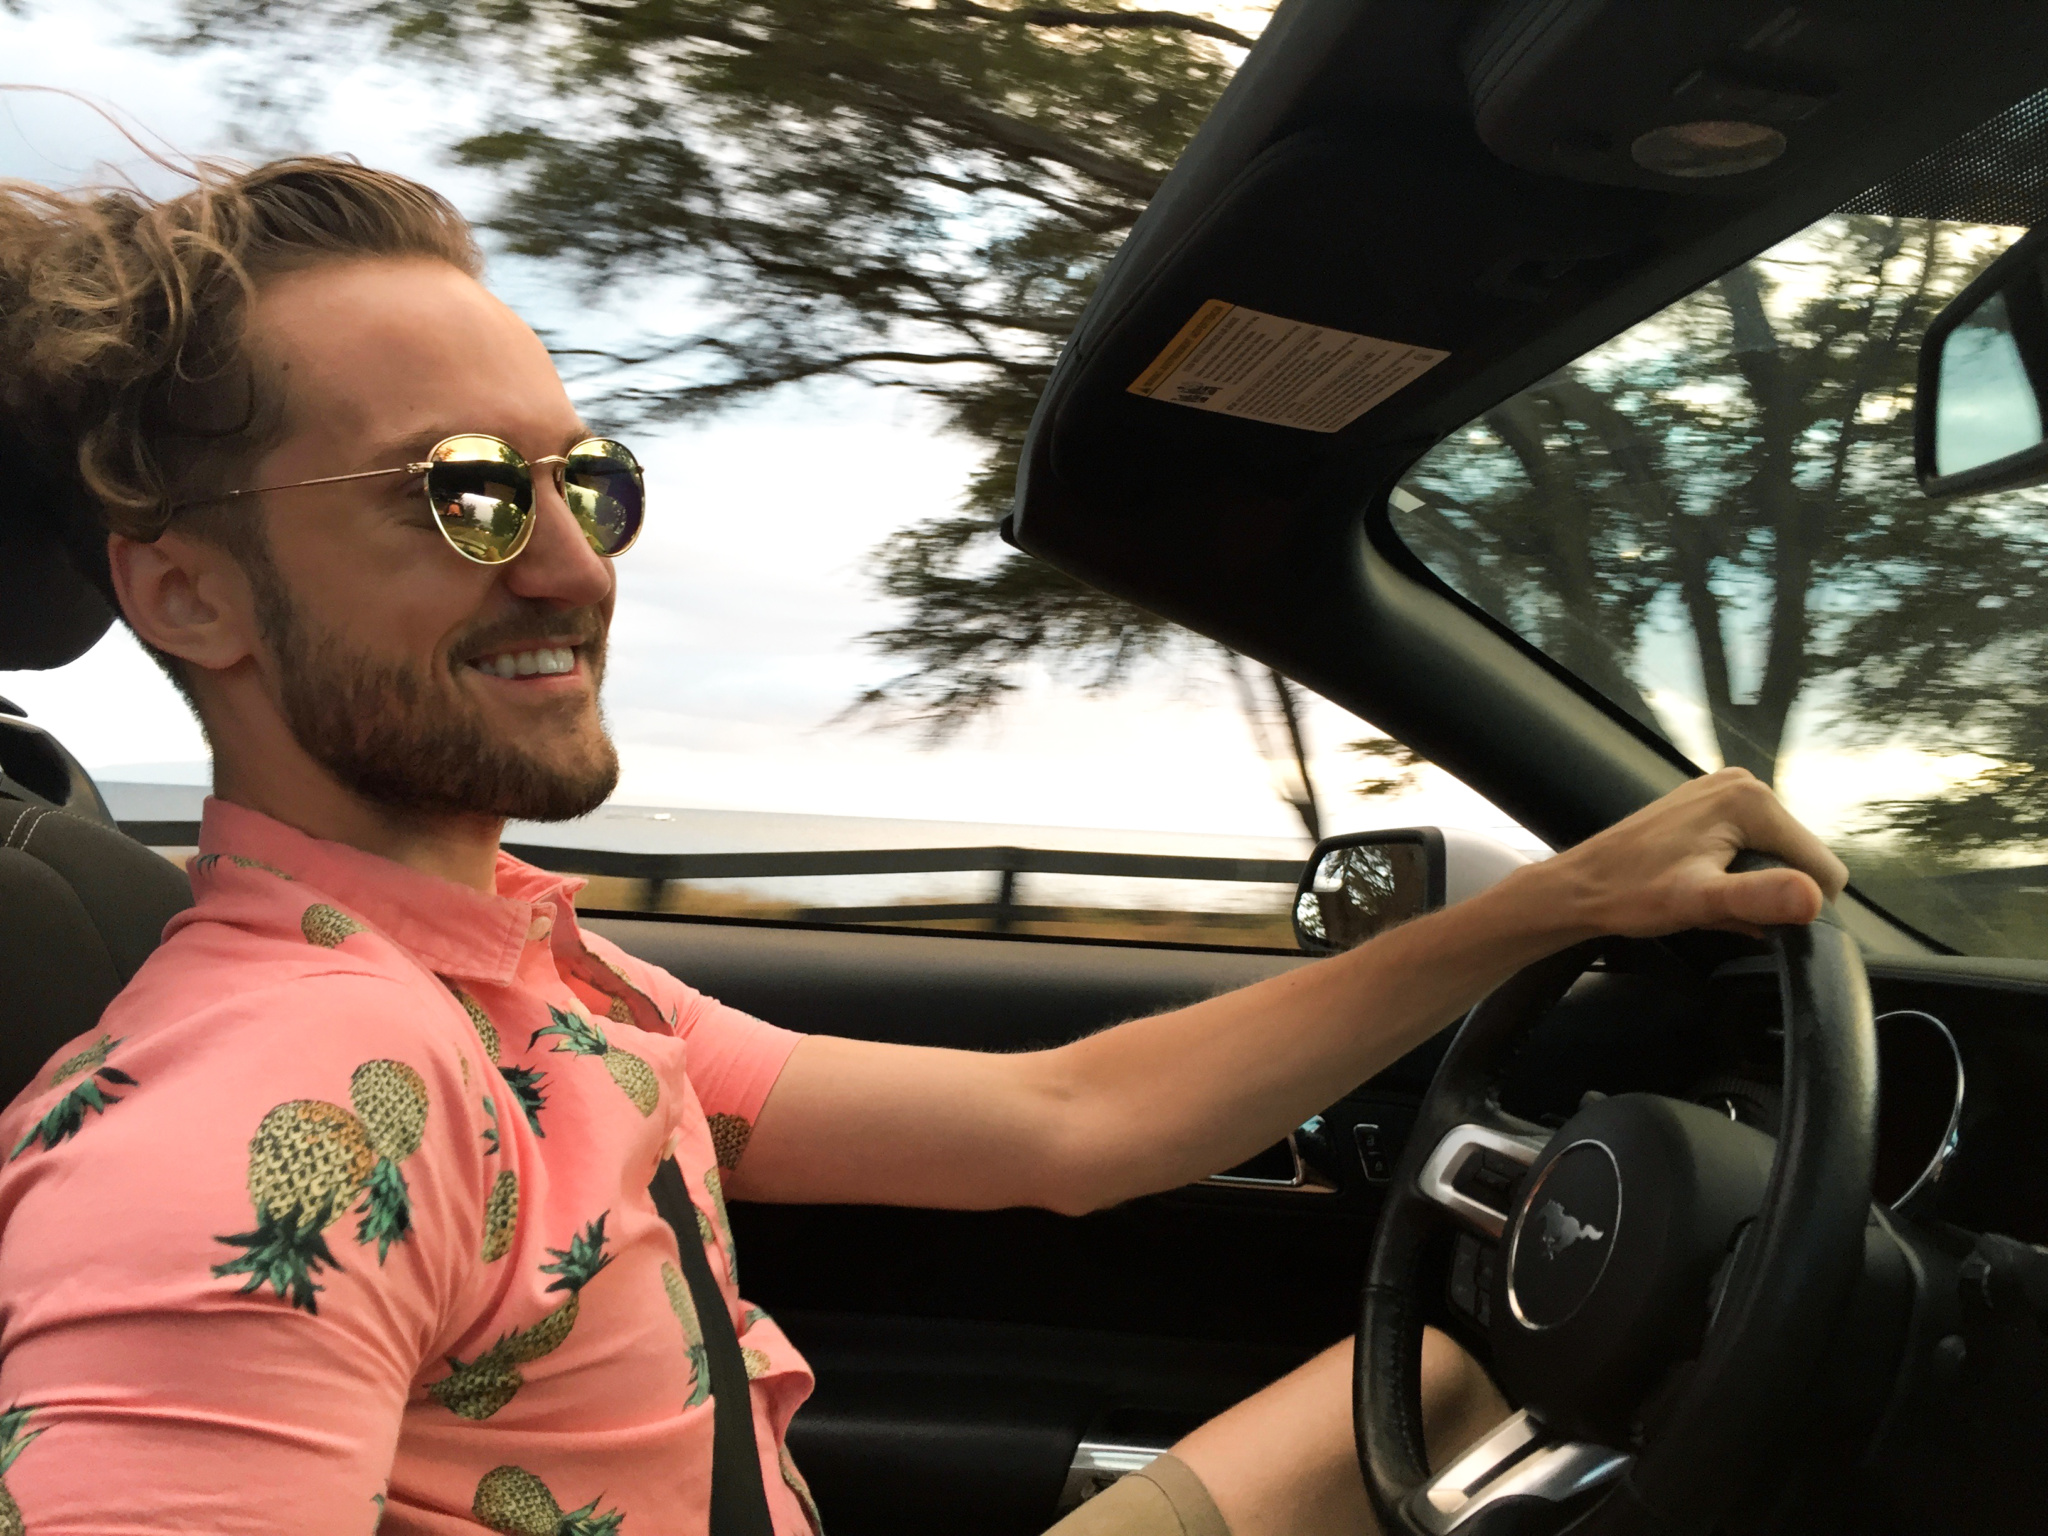 Urban Outfitters Pineapple Short Sleeve Button Down Drive Lahaina Lāhainā Maui Hawaii - Ford Mustang Convertible Top Down - Ray Ban - Ray-Ban - Sojos Vision Eyewear - The Killer Look Travels - KillerTravel - Killer Travel - Steven Killian - TheKillerLook.com - The Killer Look